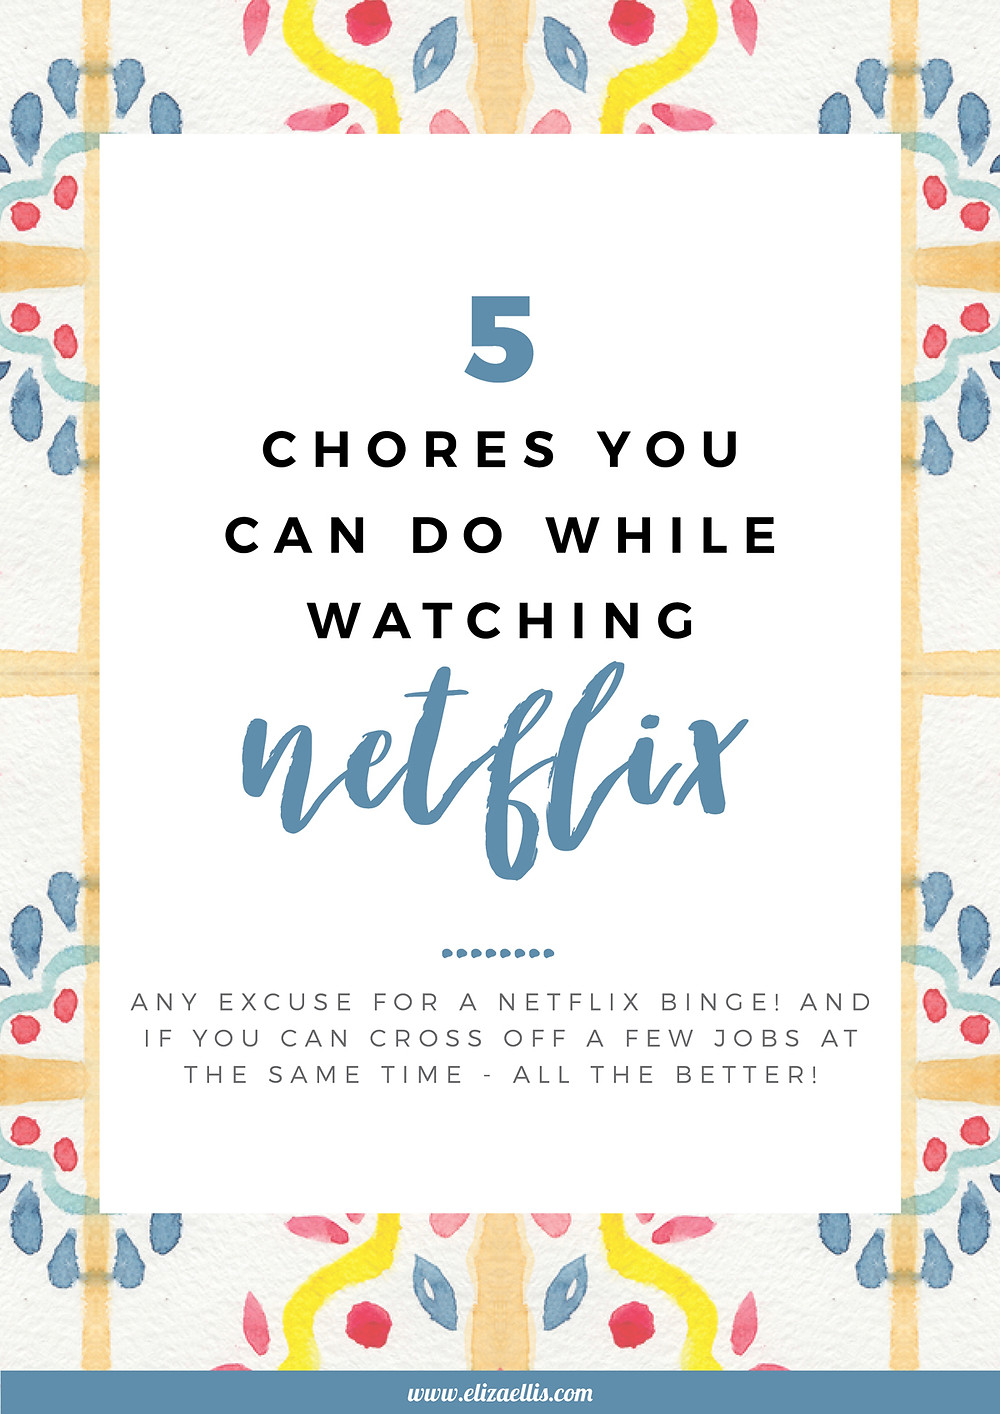 5 Chores You Can Do While Watching Netflix // Eliza Ellis // chores, daily chores, weekly chores, chore chart, family chores, SAHM tips and tricks, WAHM tips and tricks, netflix, household organizing, organizing tips and tricks, ironing tips, tax time tips, housework tips, netflix hacks, housework hacks, housework, SAHM hacks, WAHM hacks, housework routine, cleaning schedule